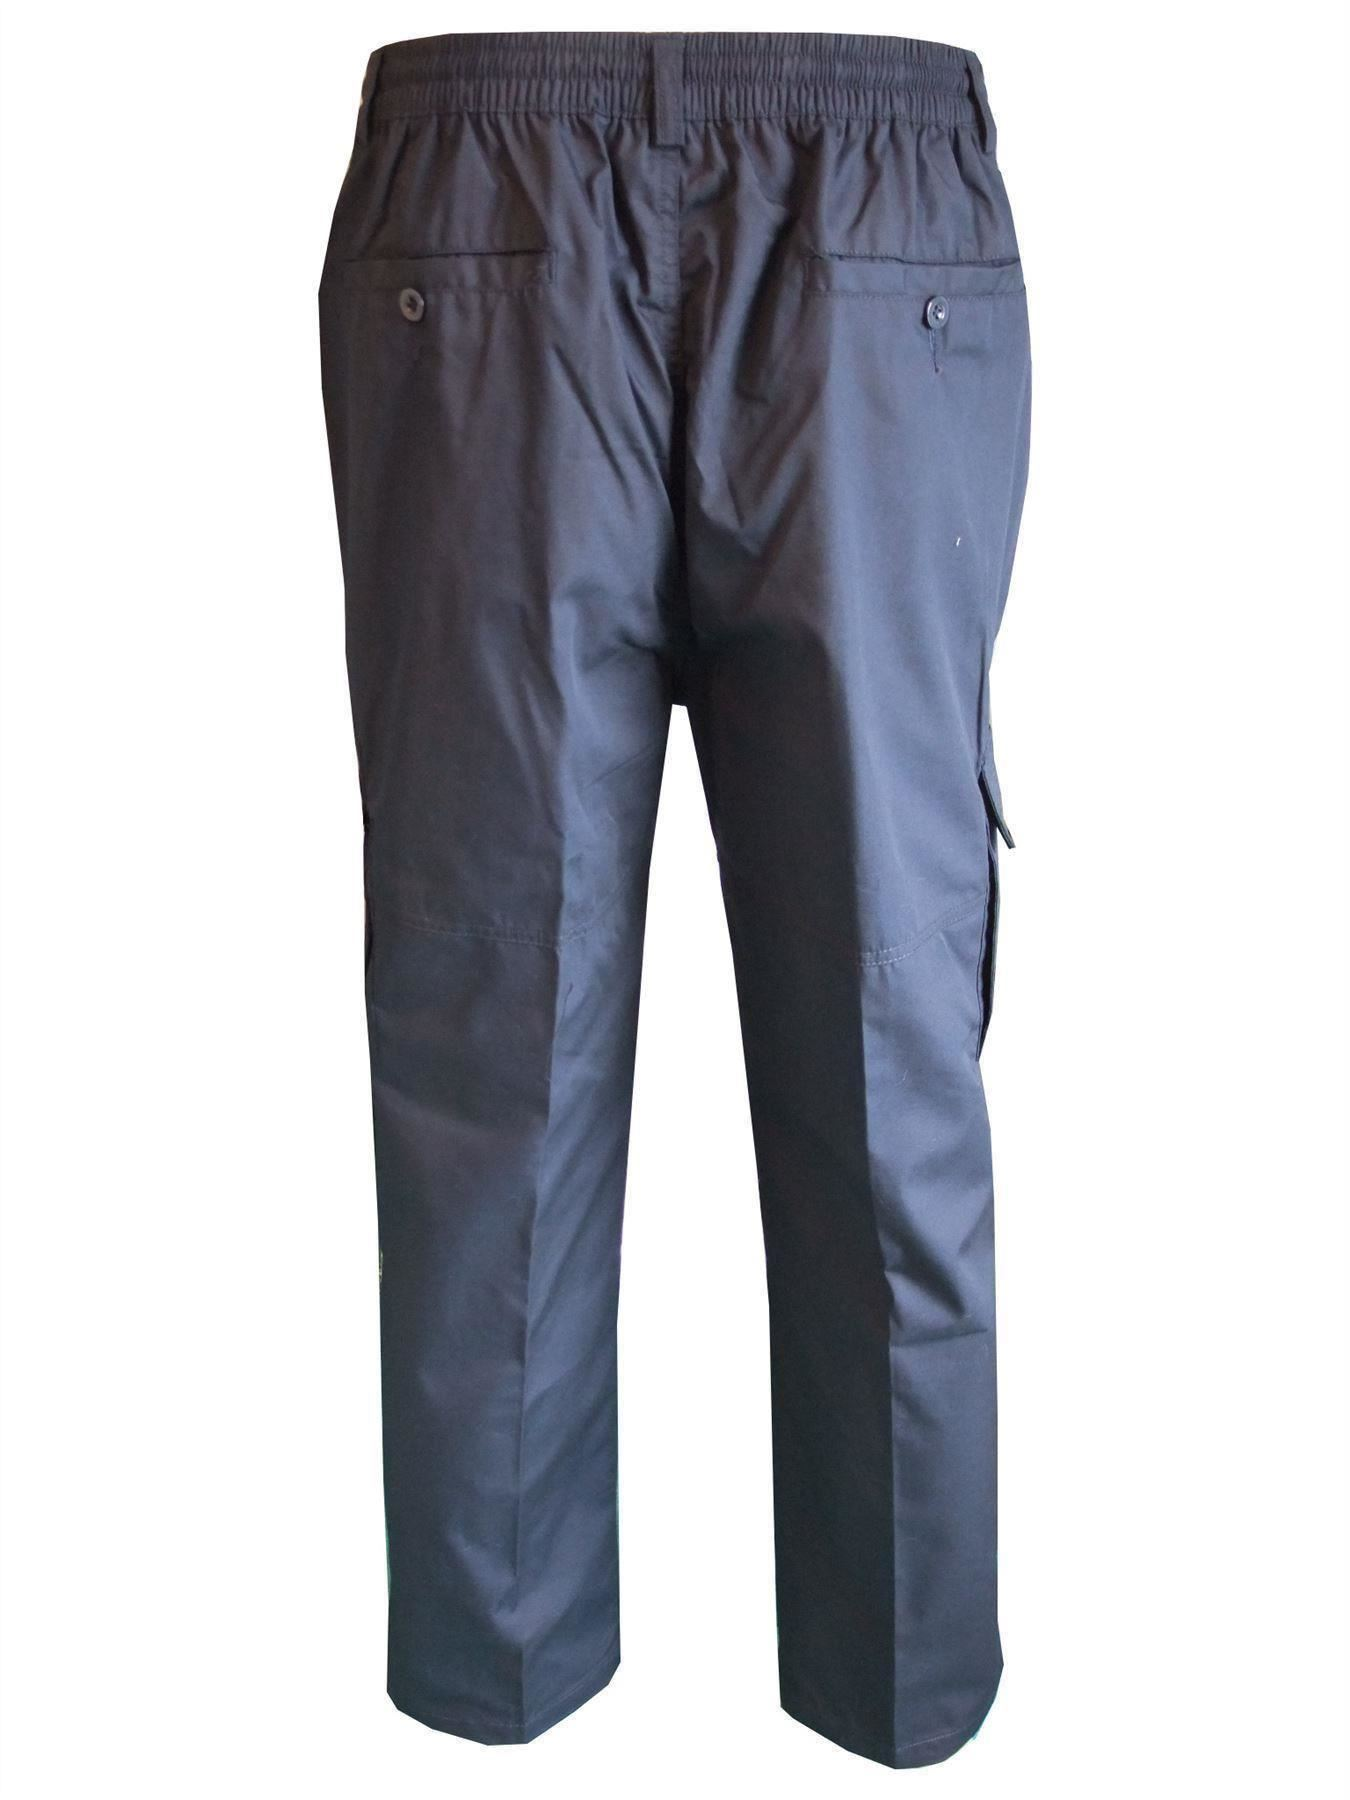 Men-Straight-Trousers-Cargo-Combat-Cotton-Elasticated-Zip-Fly-Casual-Pants-M-3XL thumbnail 22